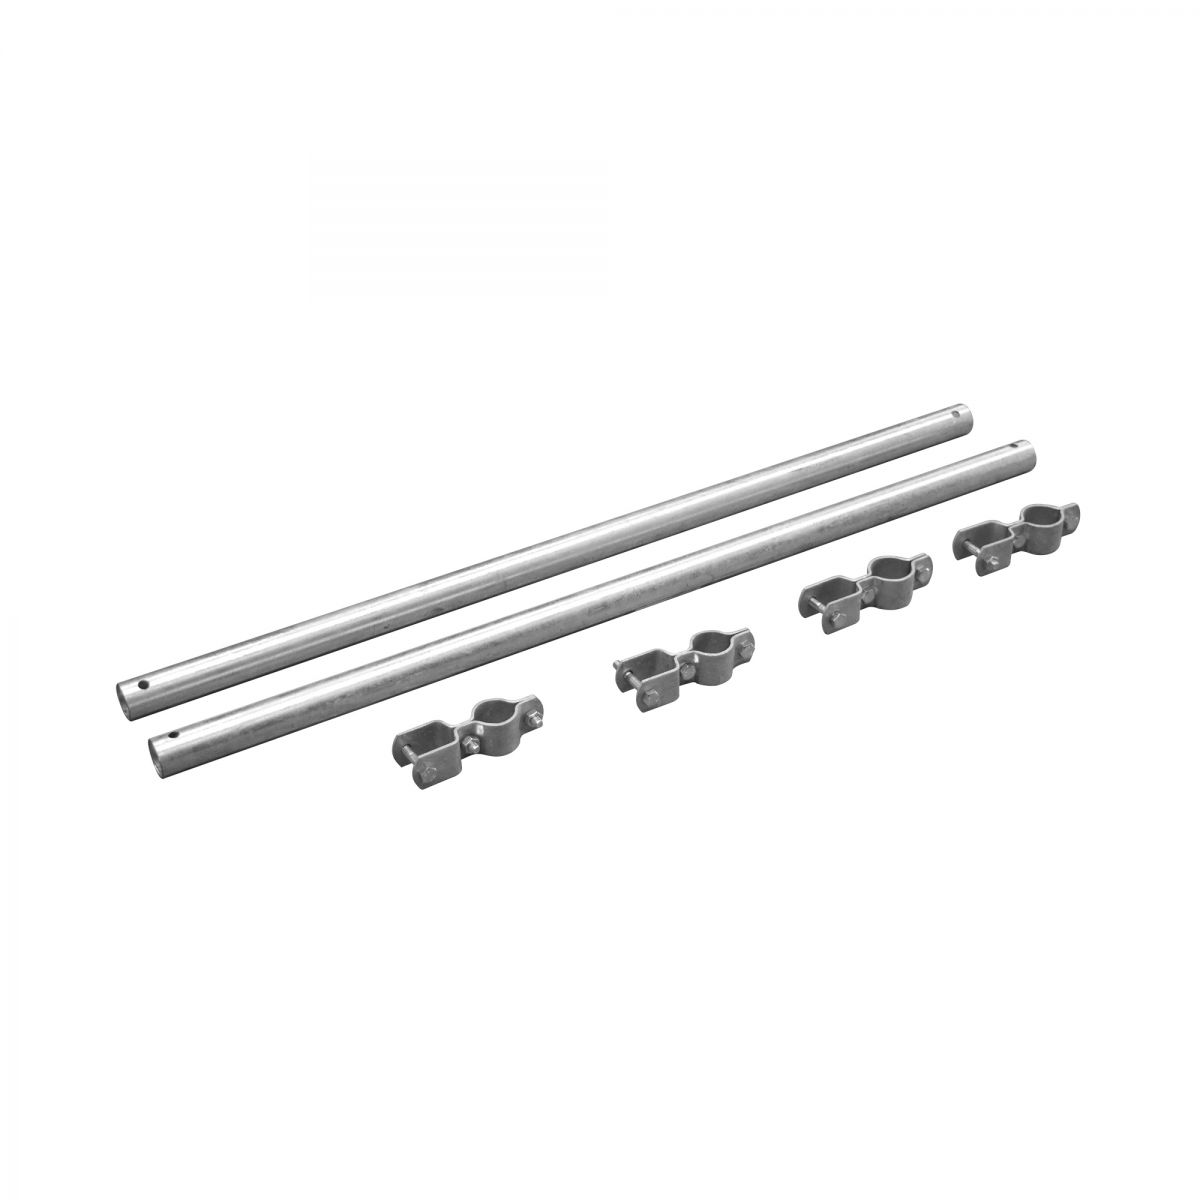 set of support tubes 1 x 1 with clamps